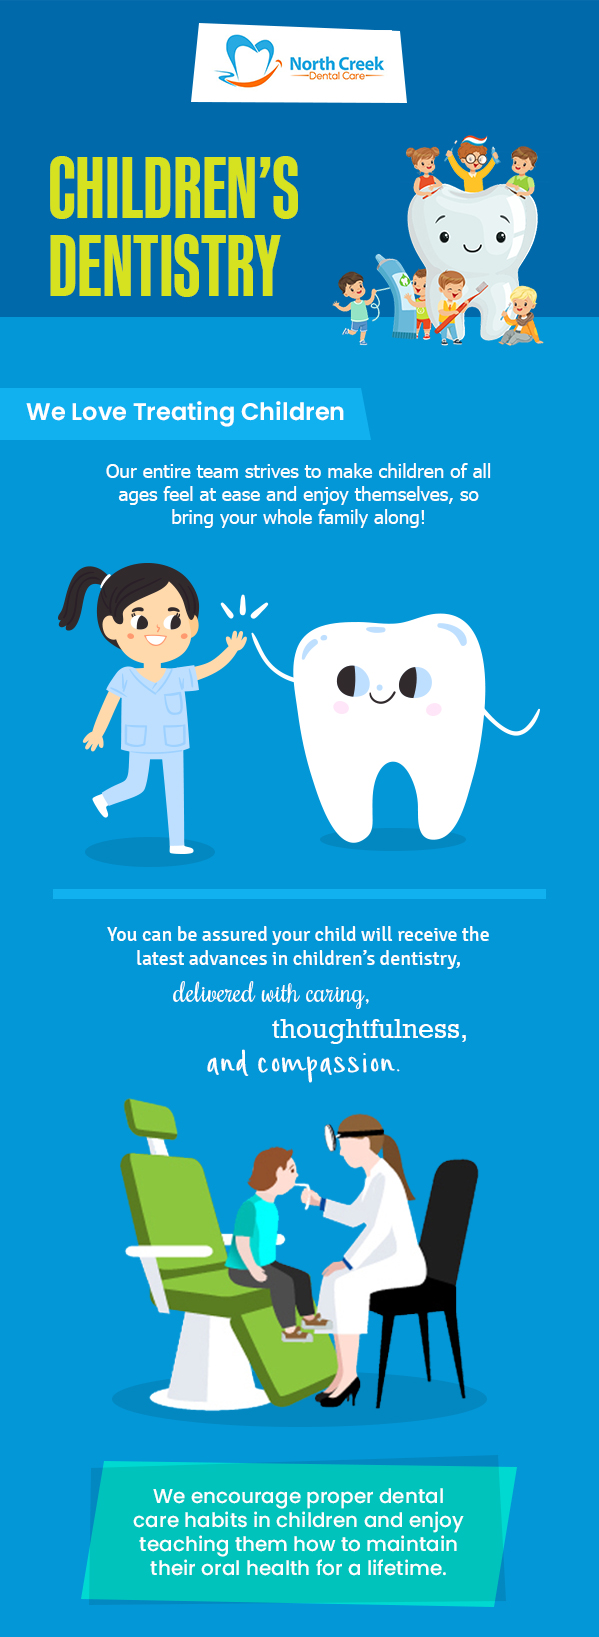 Choose North Creek Dental Care for Children's Dentistry Services in Tinley Park, IL